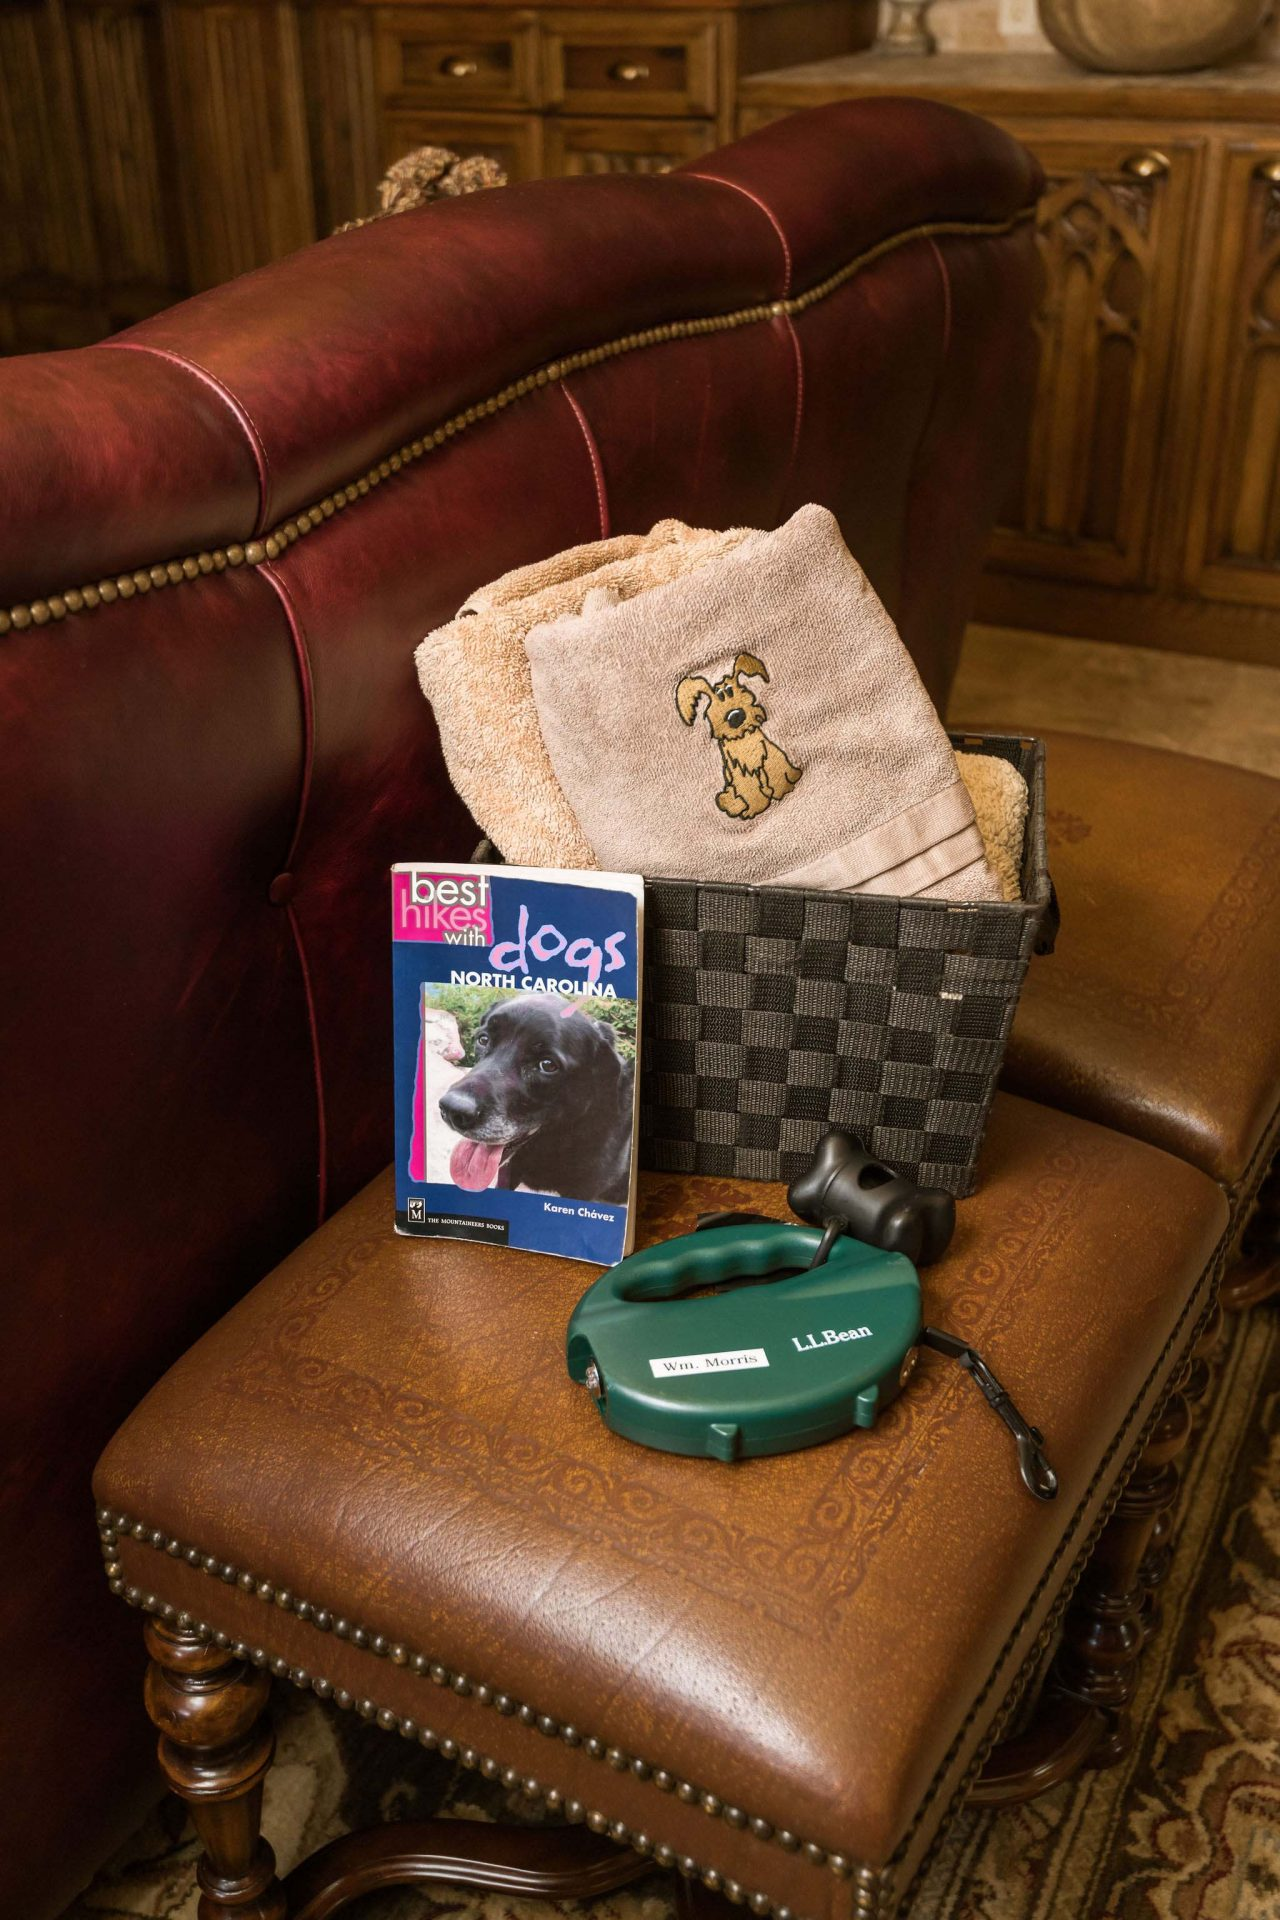 A box with dog-towels, leash, dog toy, and a book with Asheville's dog-friendly hikes